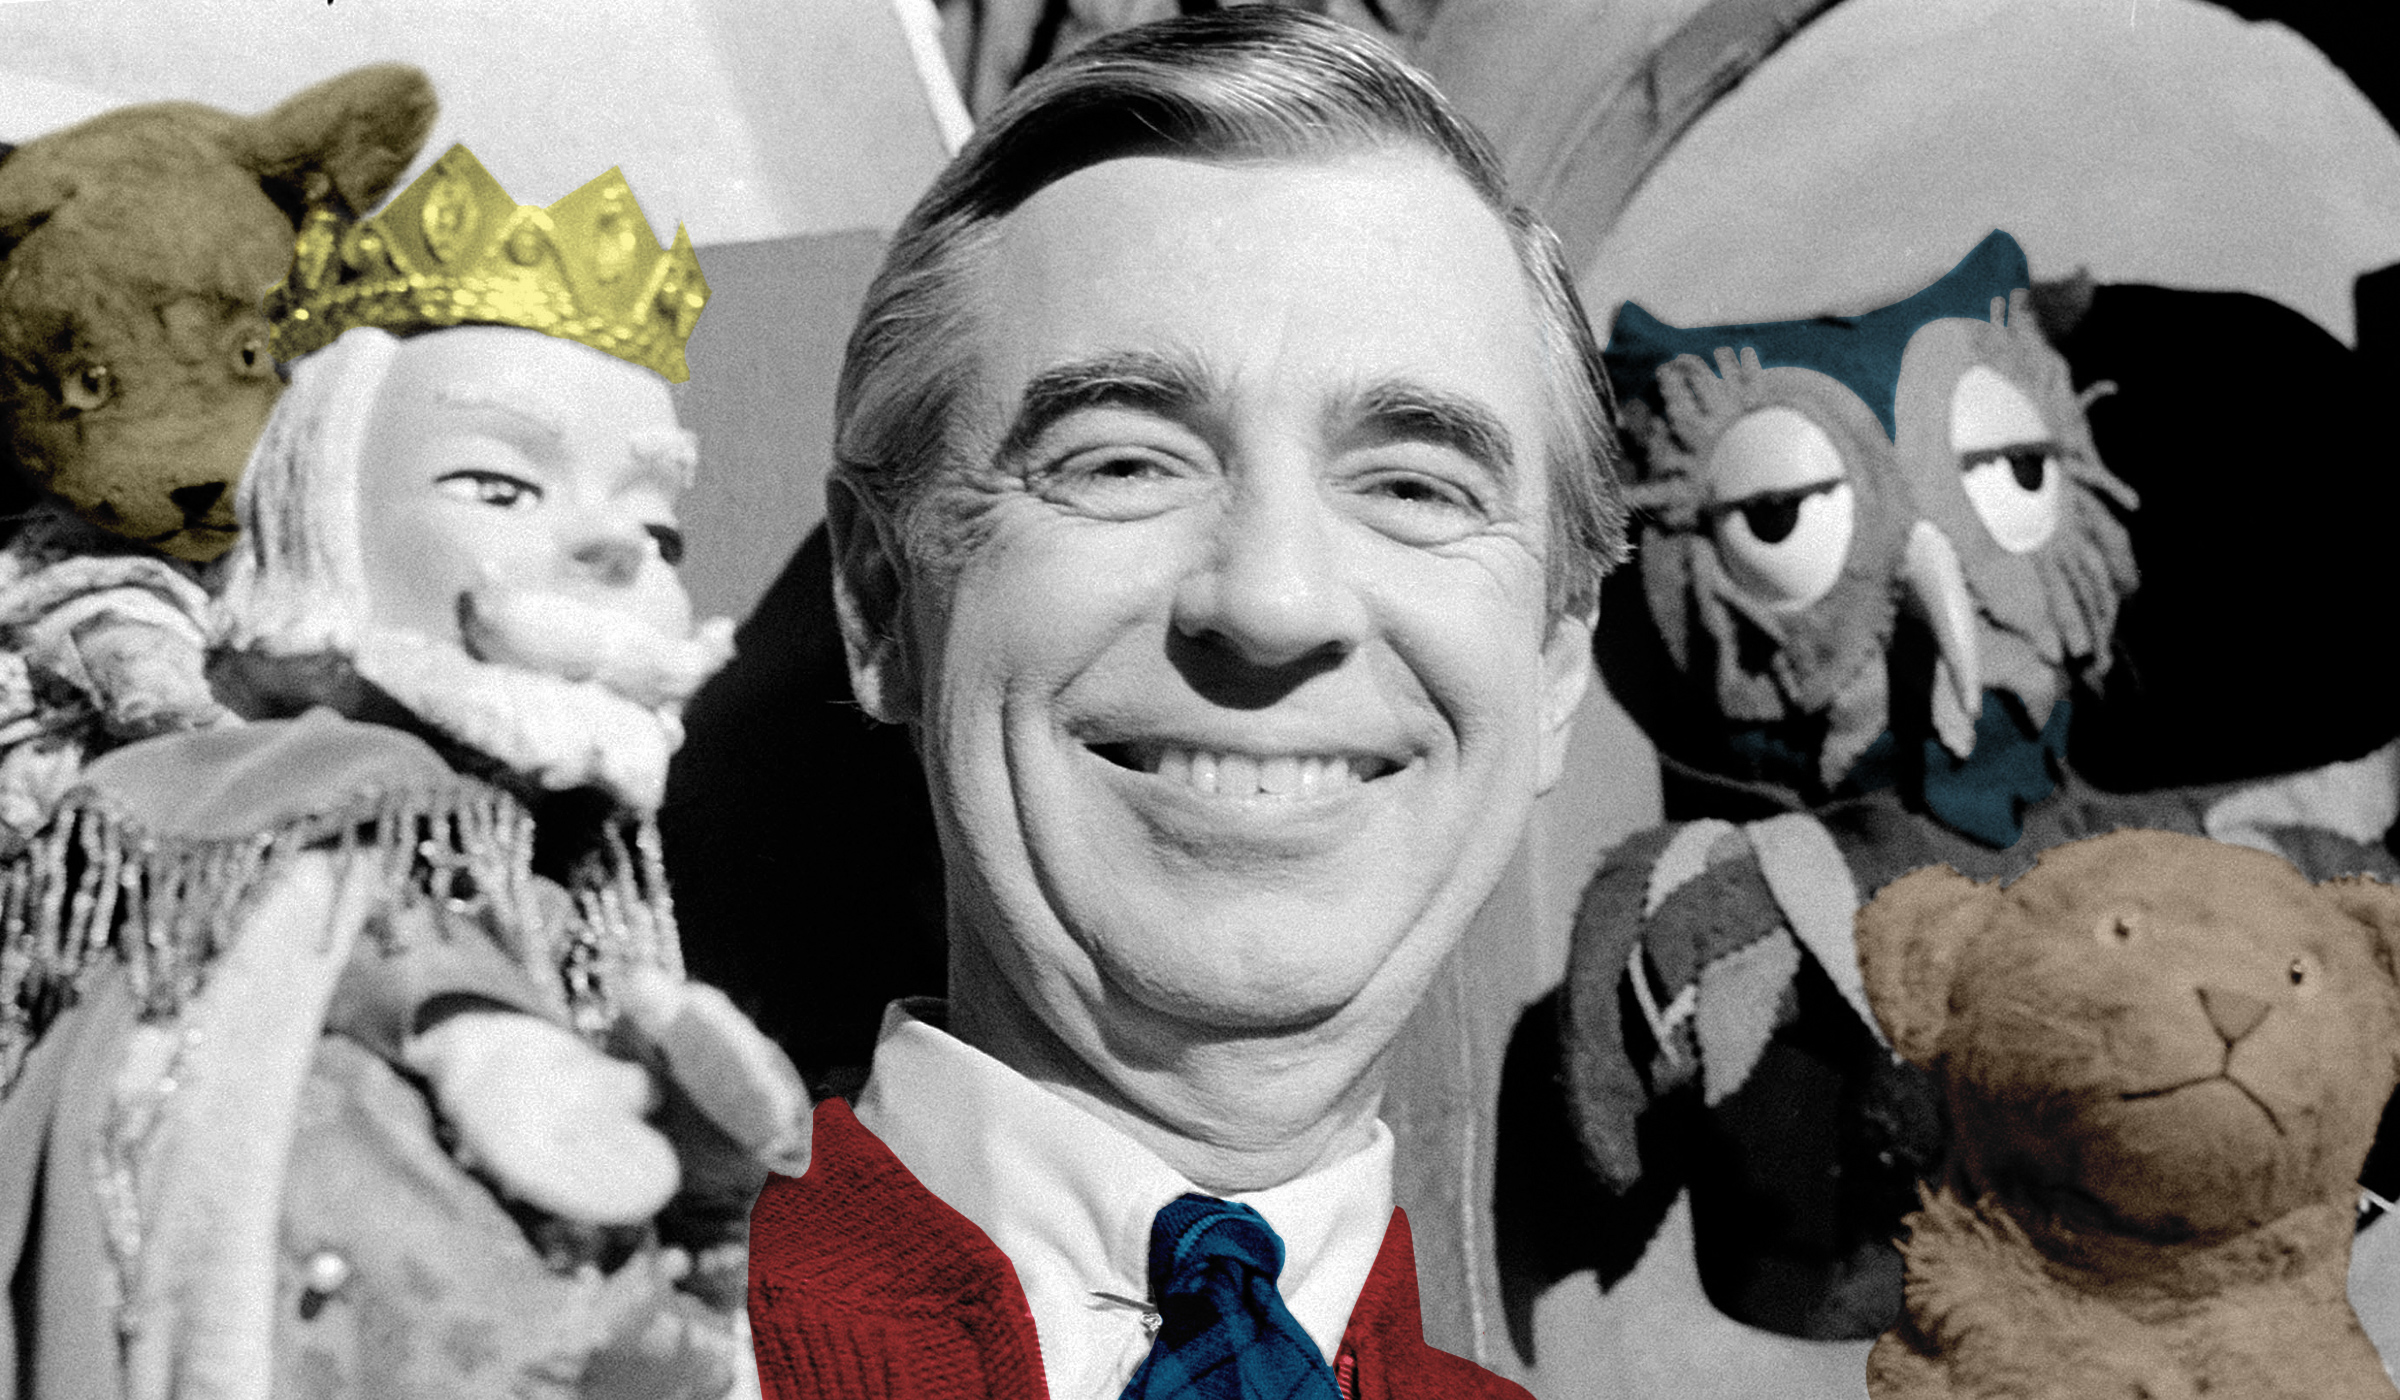 Mr Rogers Vs The Superheroes